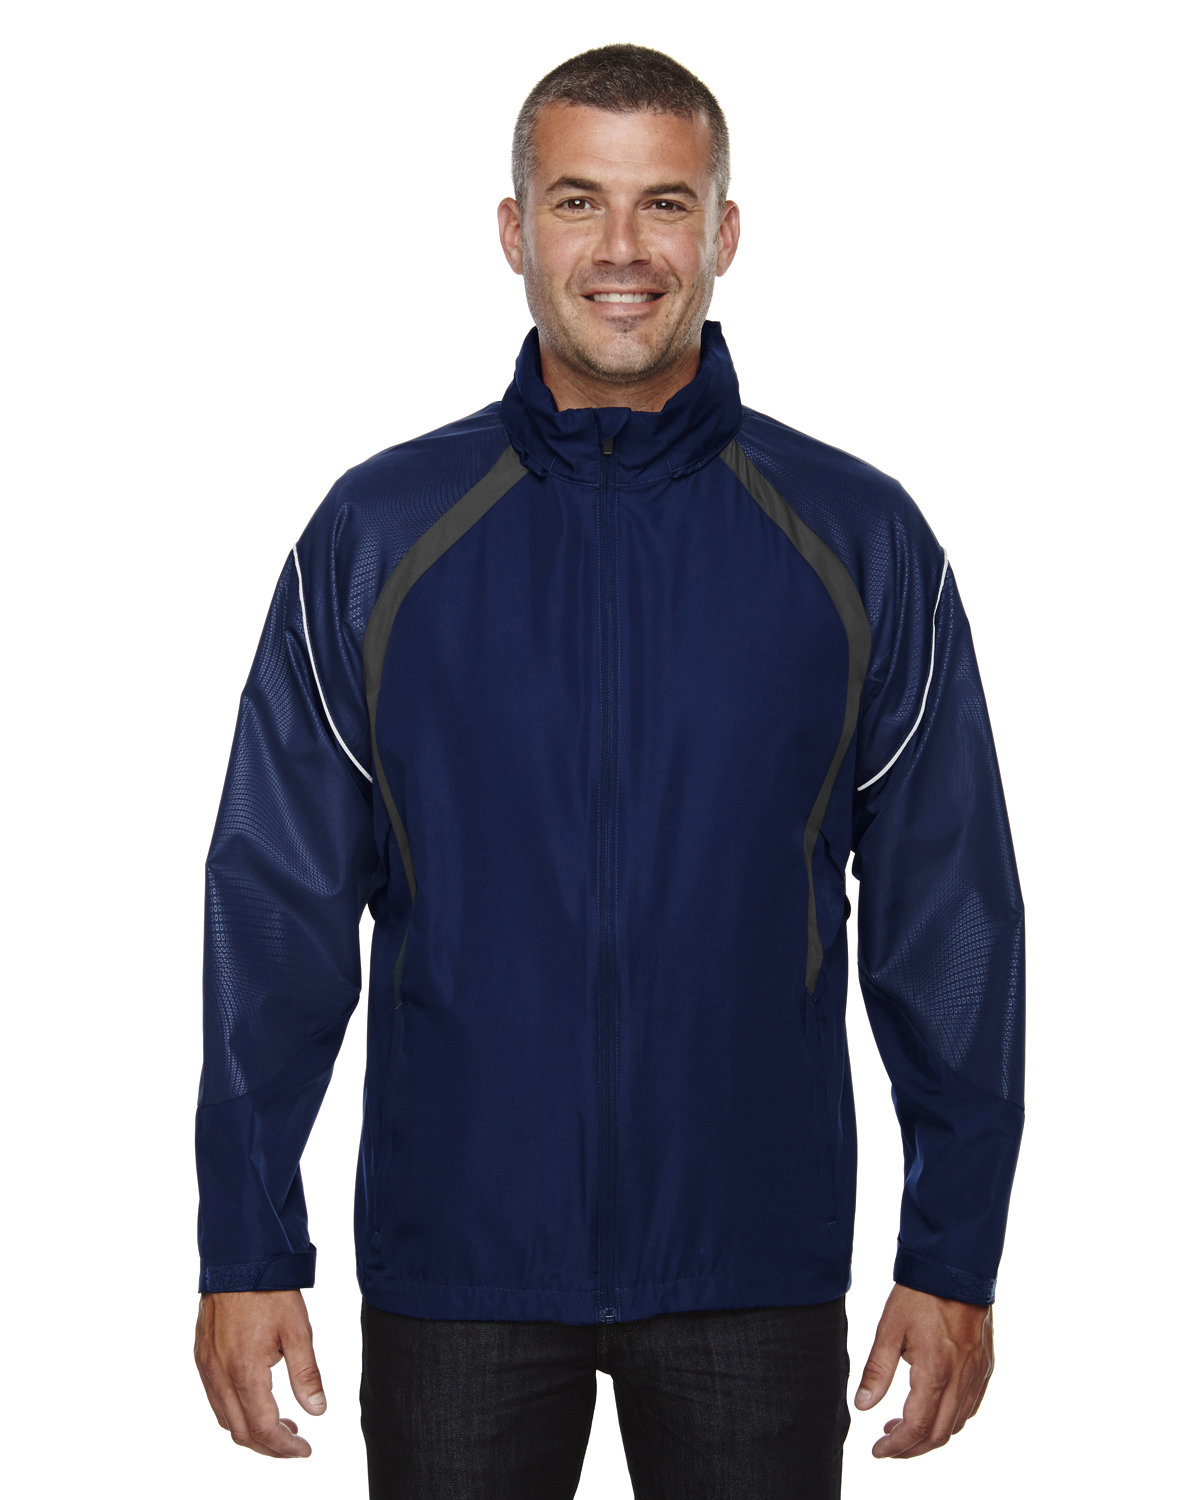 North End Men's Sirius Lightweight Jacket with Embossed Print NIGHT